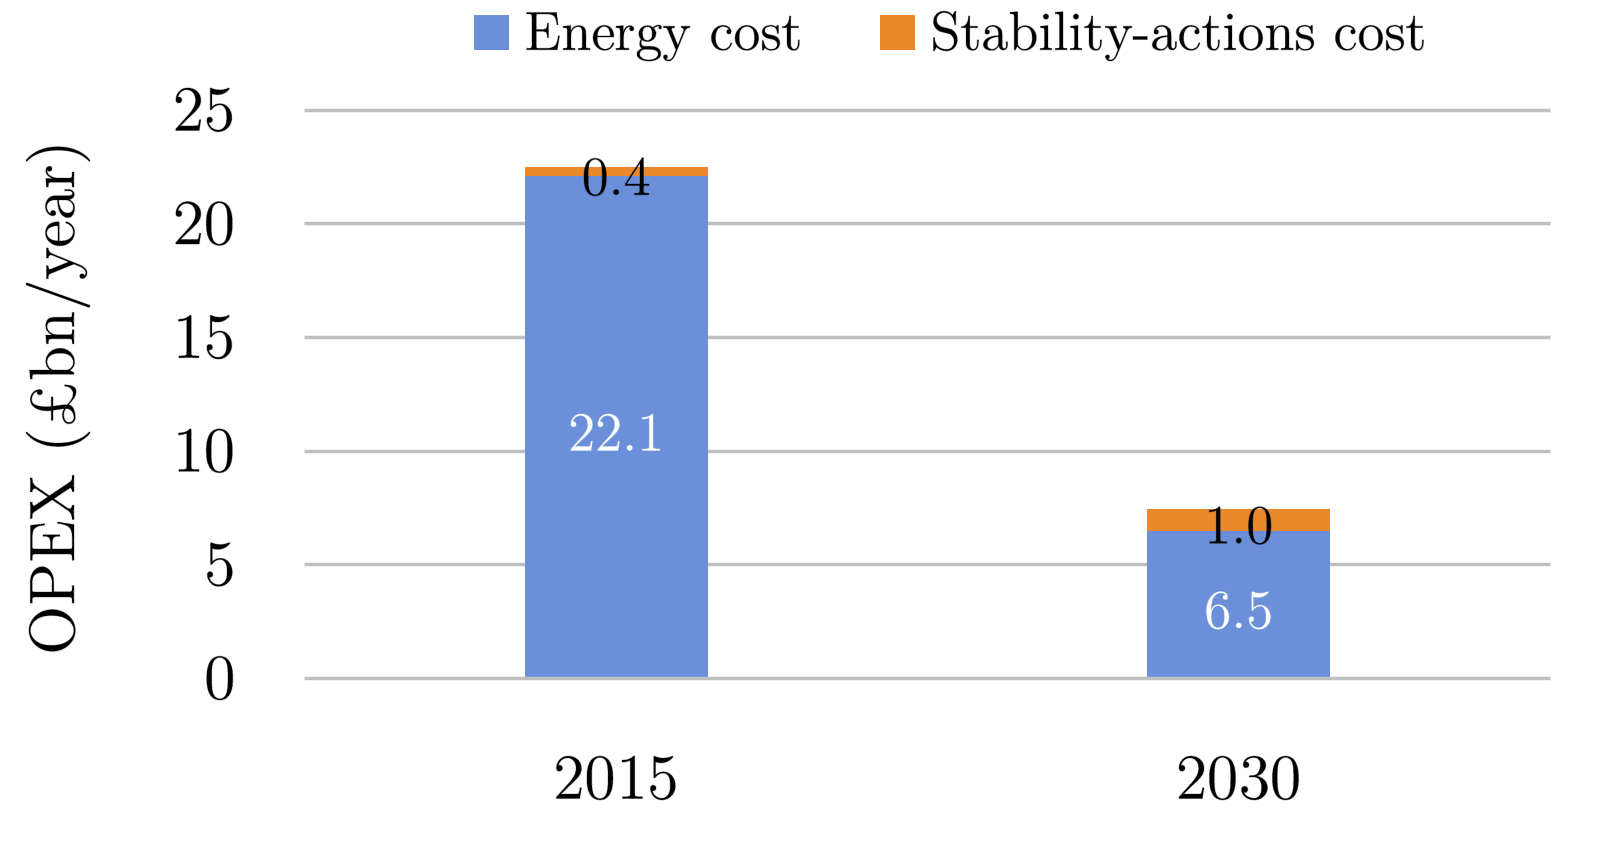 Figure 2. Operating costs of Great Britain's electricity system in 2015 and projected costs for 2030 under a carbon-neutral scenario.